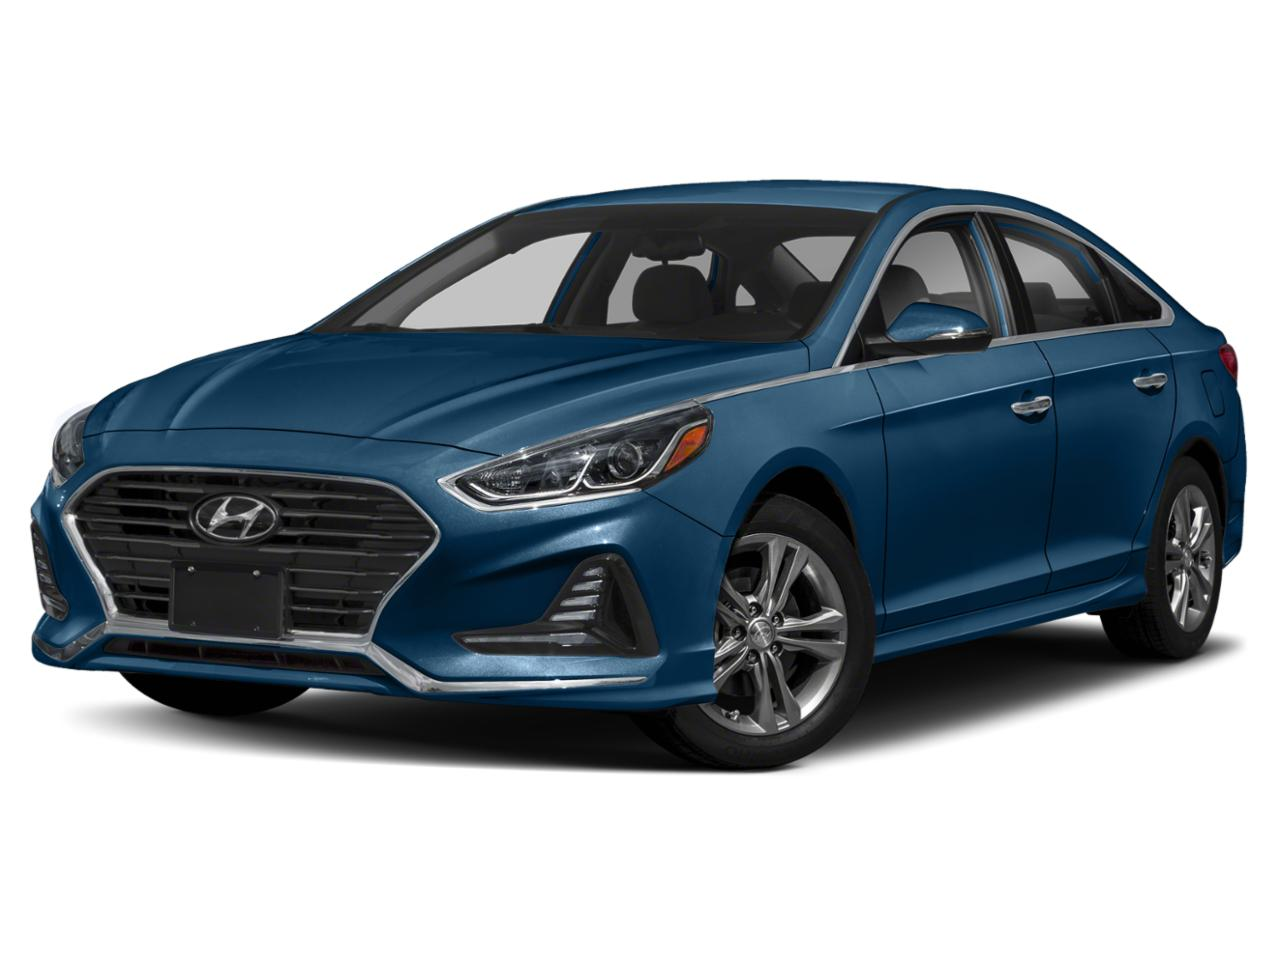 2019 Hyundai Sonata Vehicle Photo in Owensboro, KY 42303